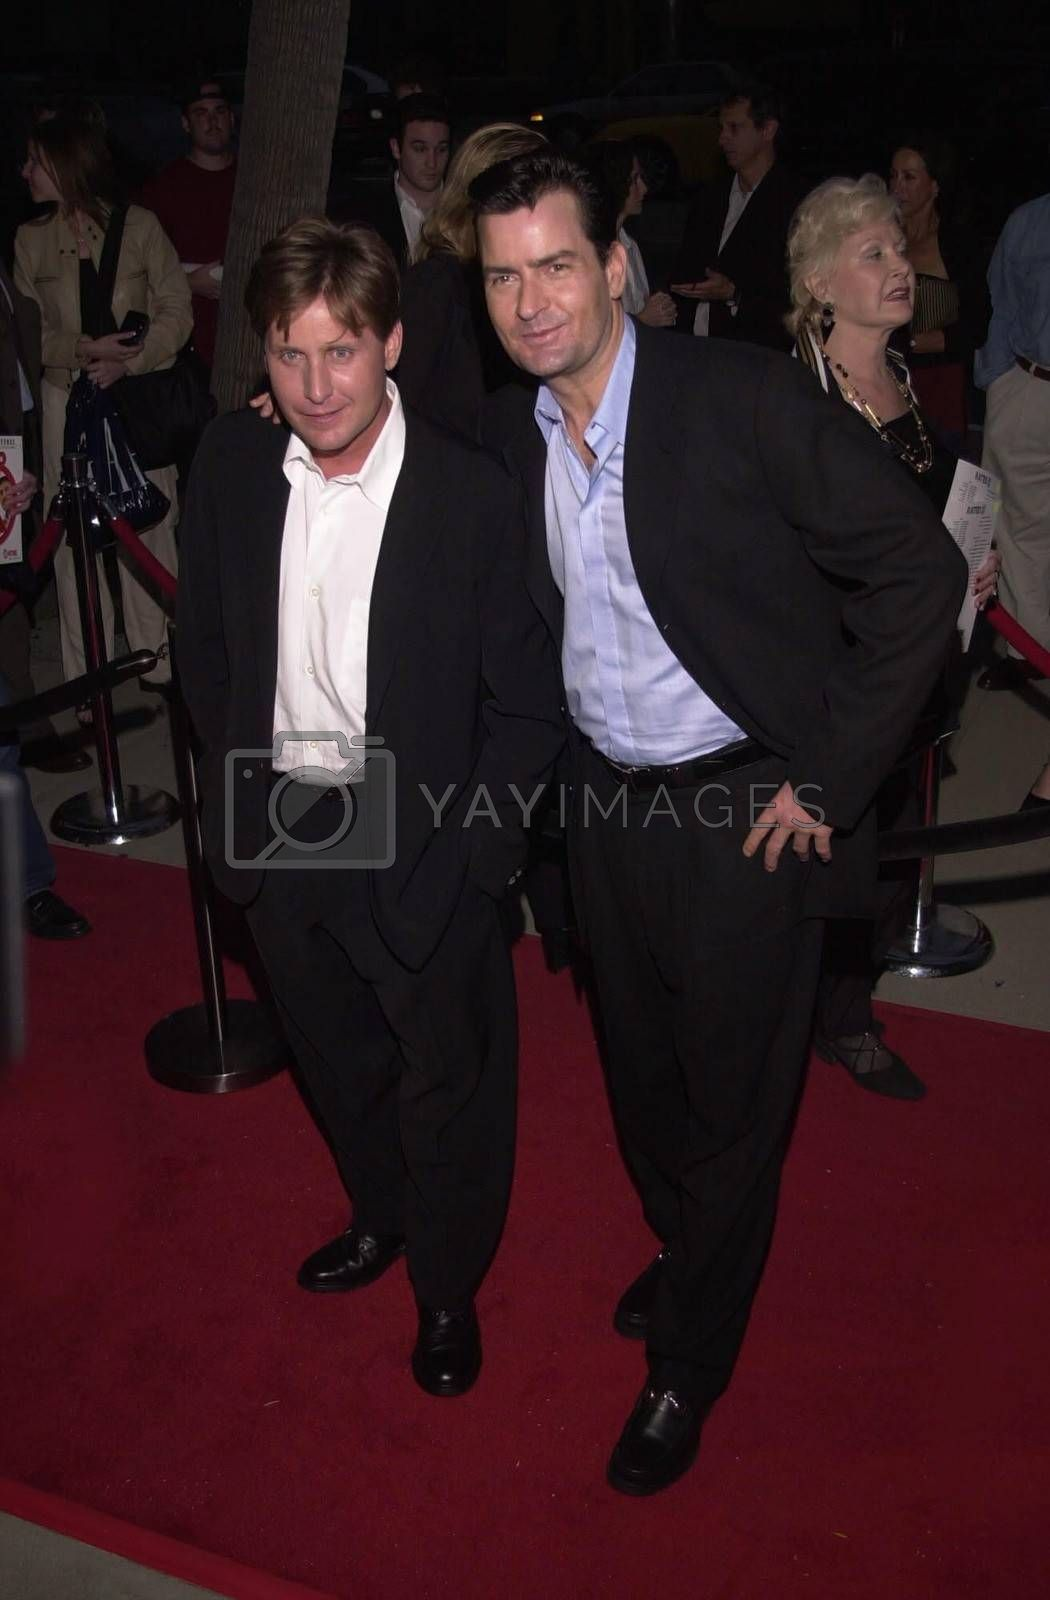 """Emilio Estevez and Charlie Sheen at the premiere of Showtime's """"RATED X"""" in Hollywood, 04-27-00"""